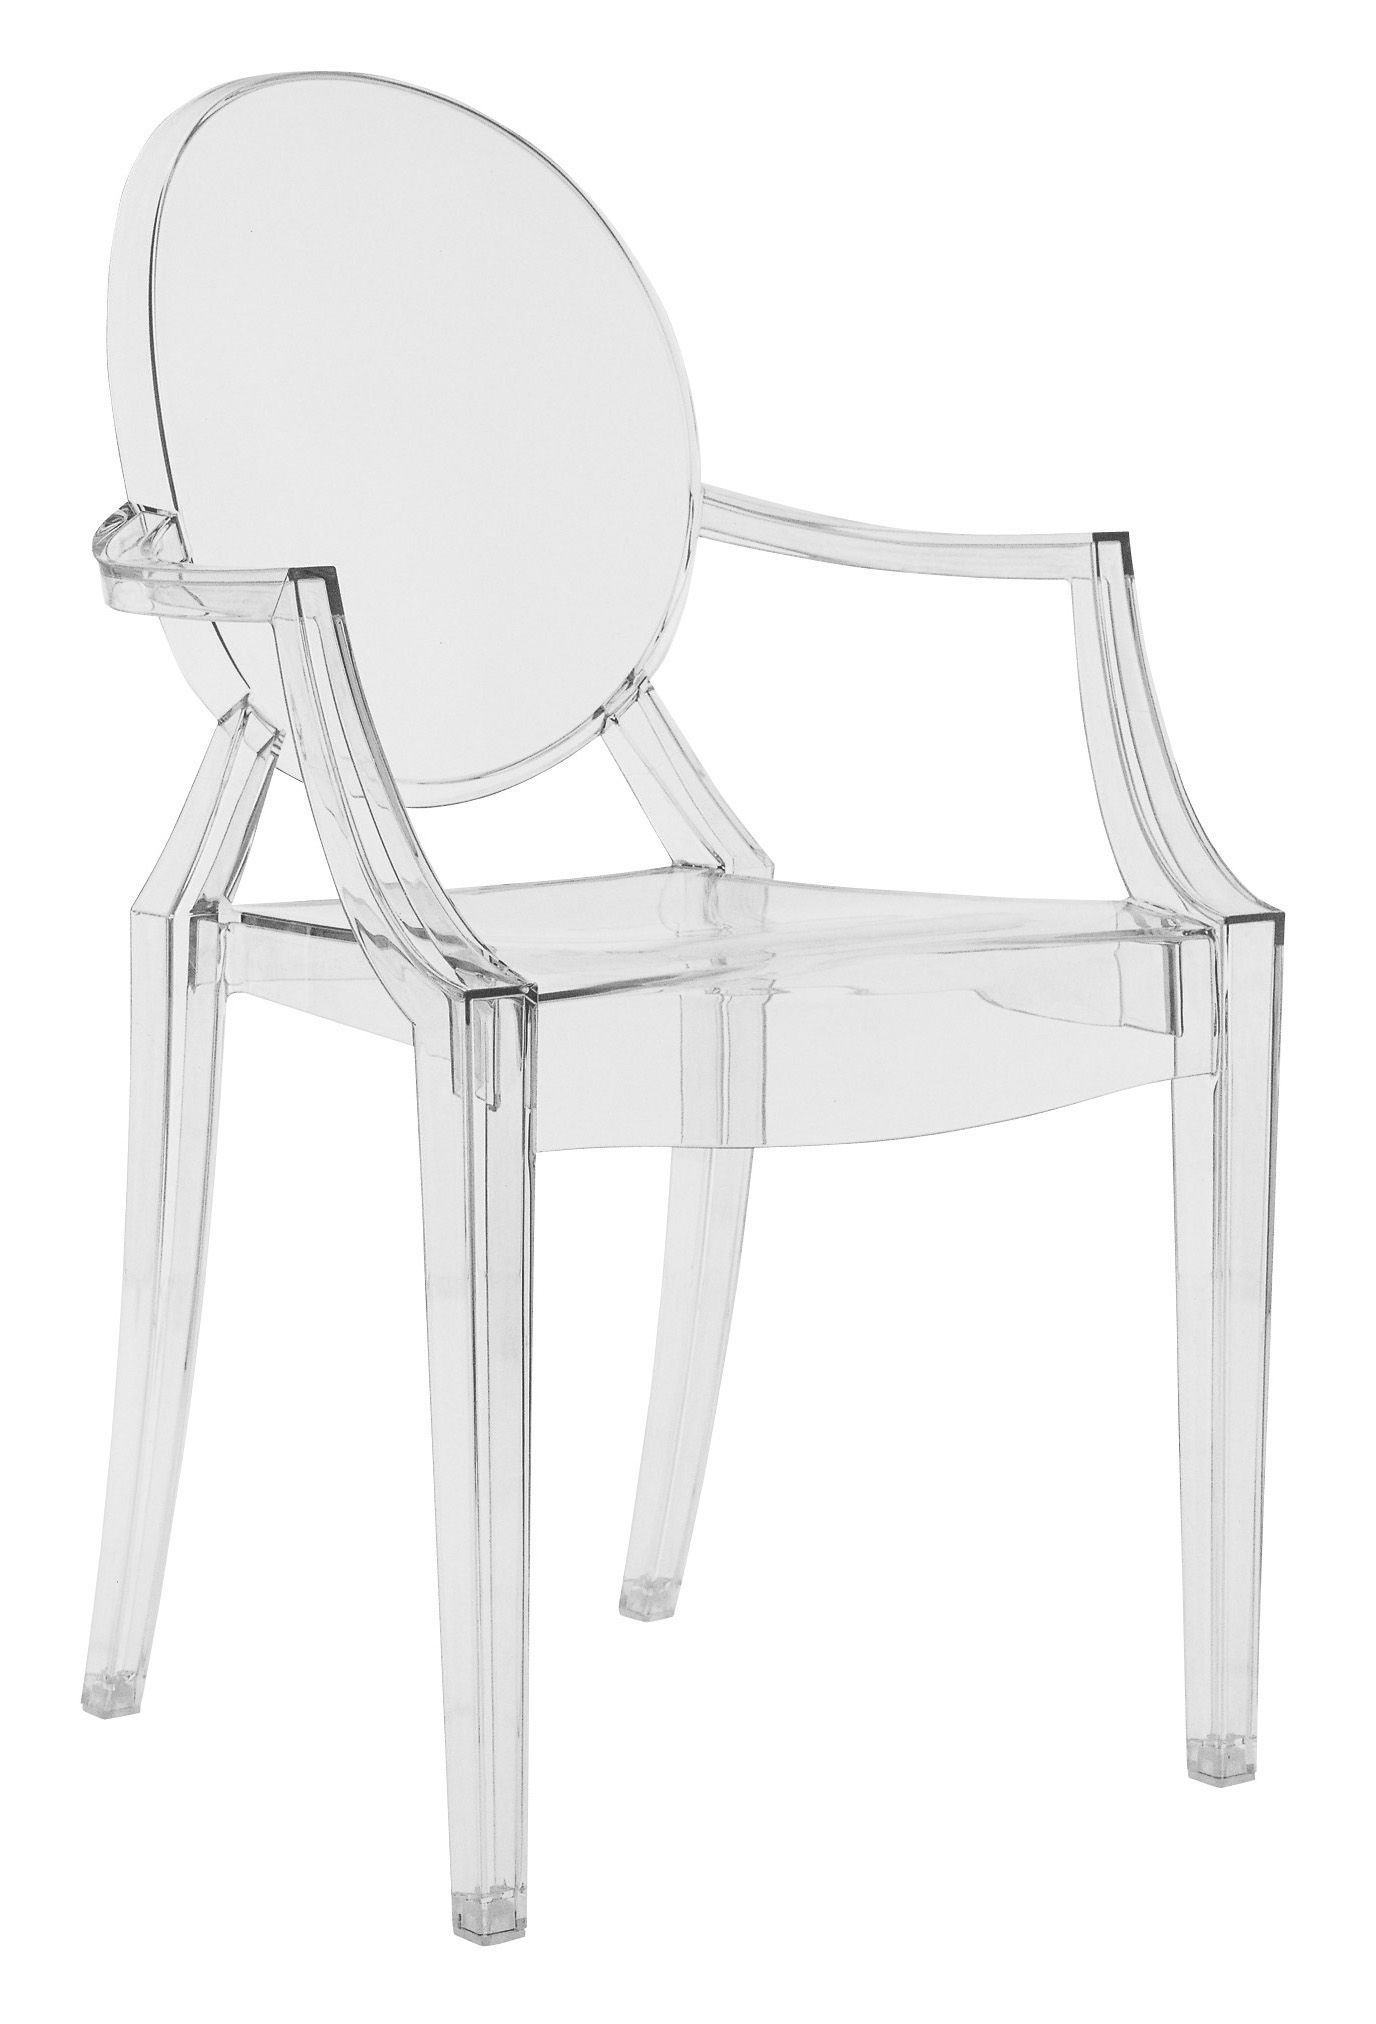 Chaises Polycarbonate Starck Starck Philippe Designer Fauteuil Louis Ghost